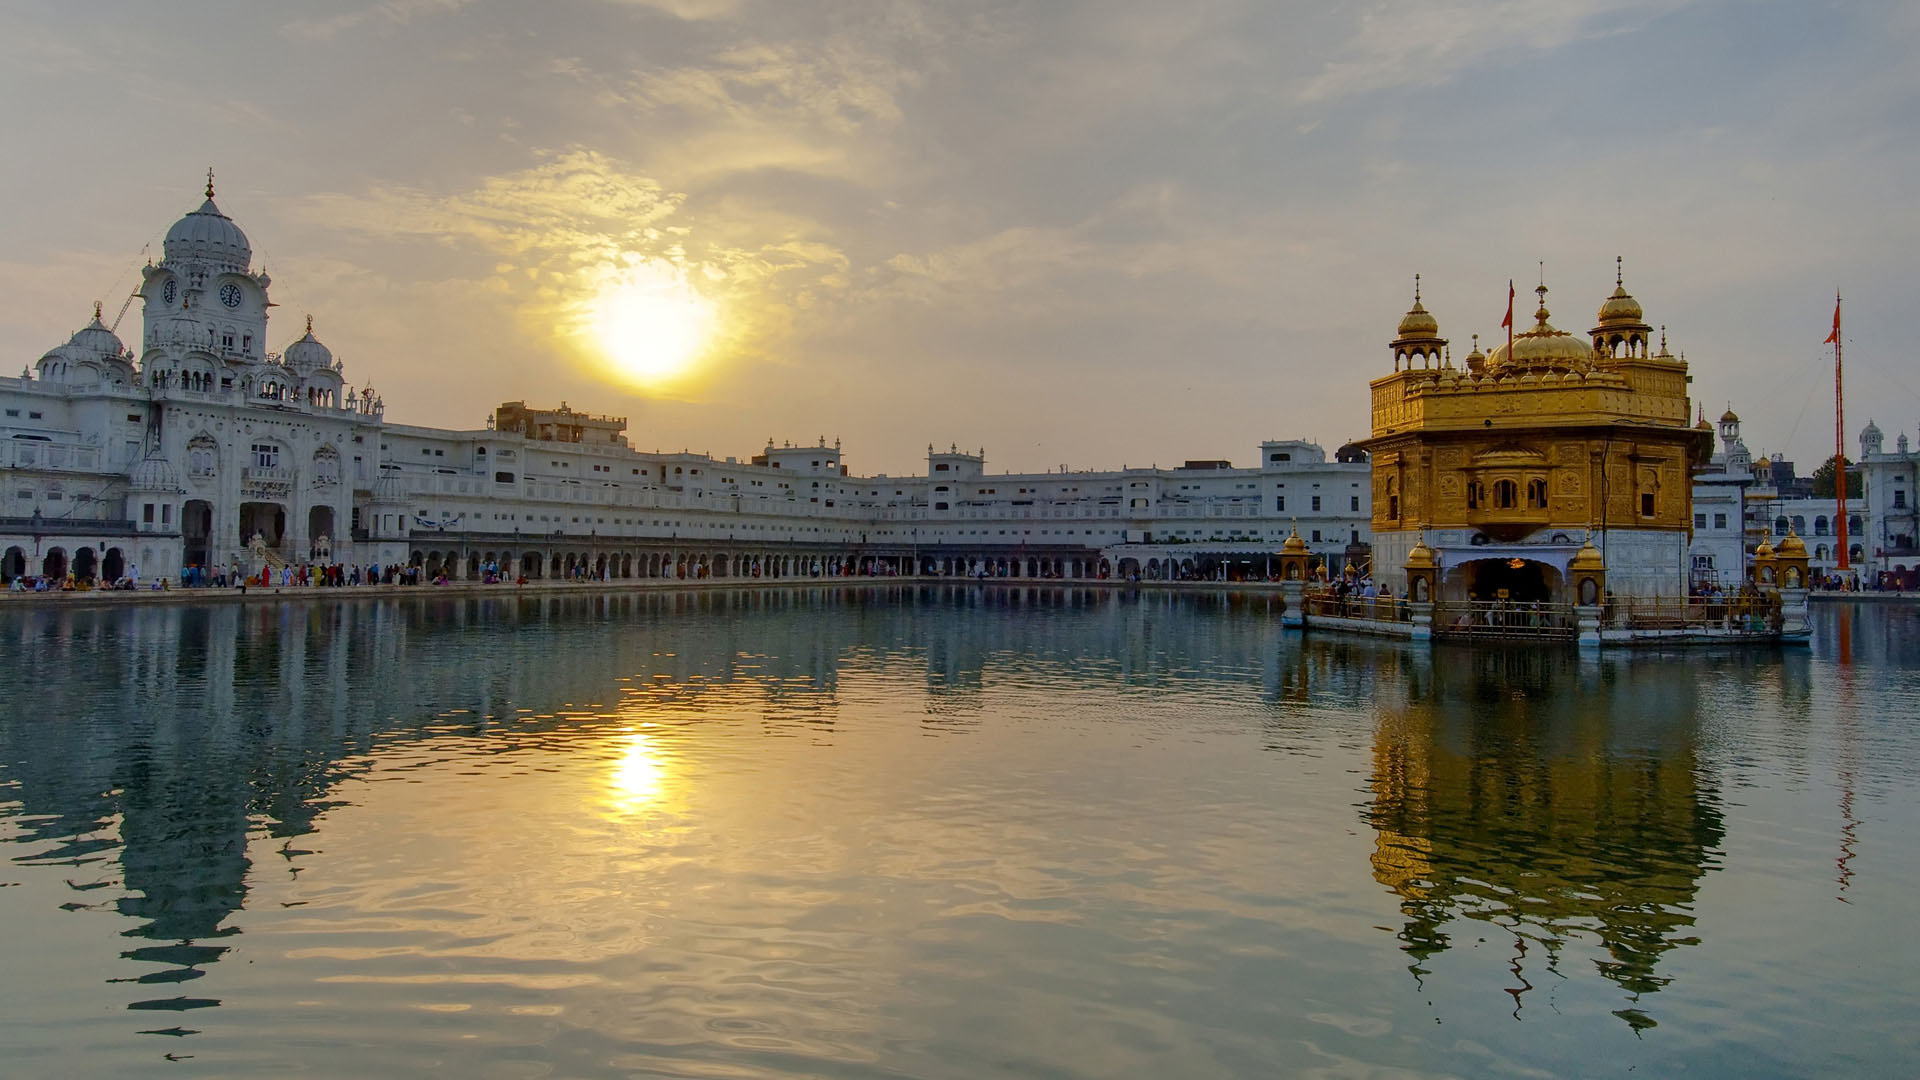 golden temple wallpaper hd